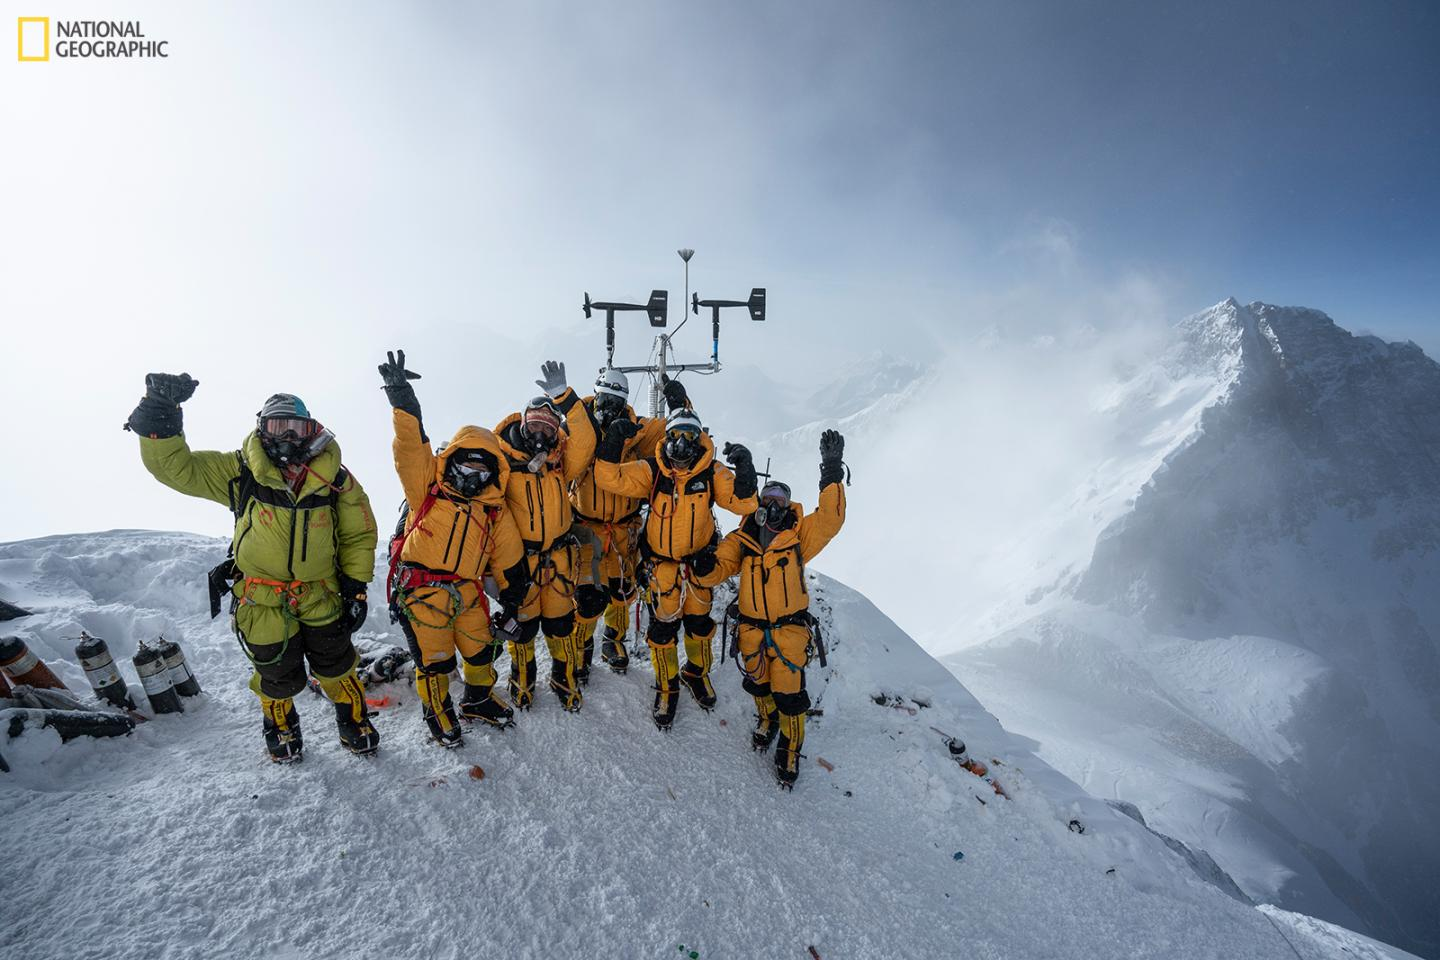 Expedition team on Mount Everest